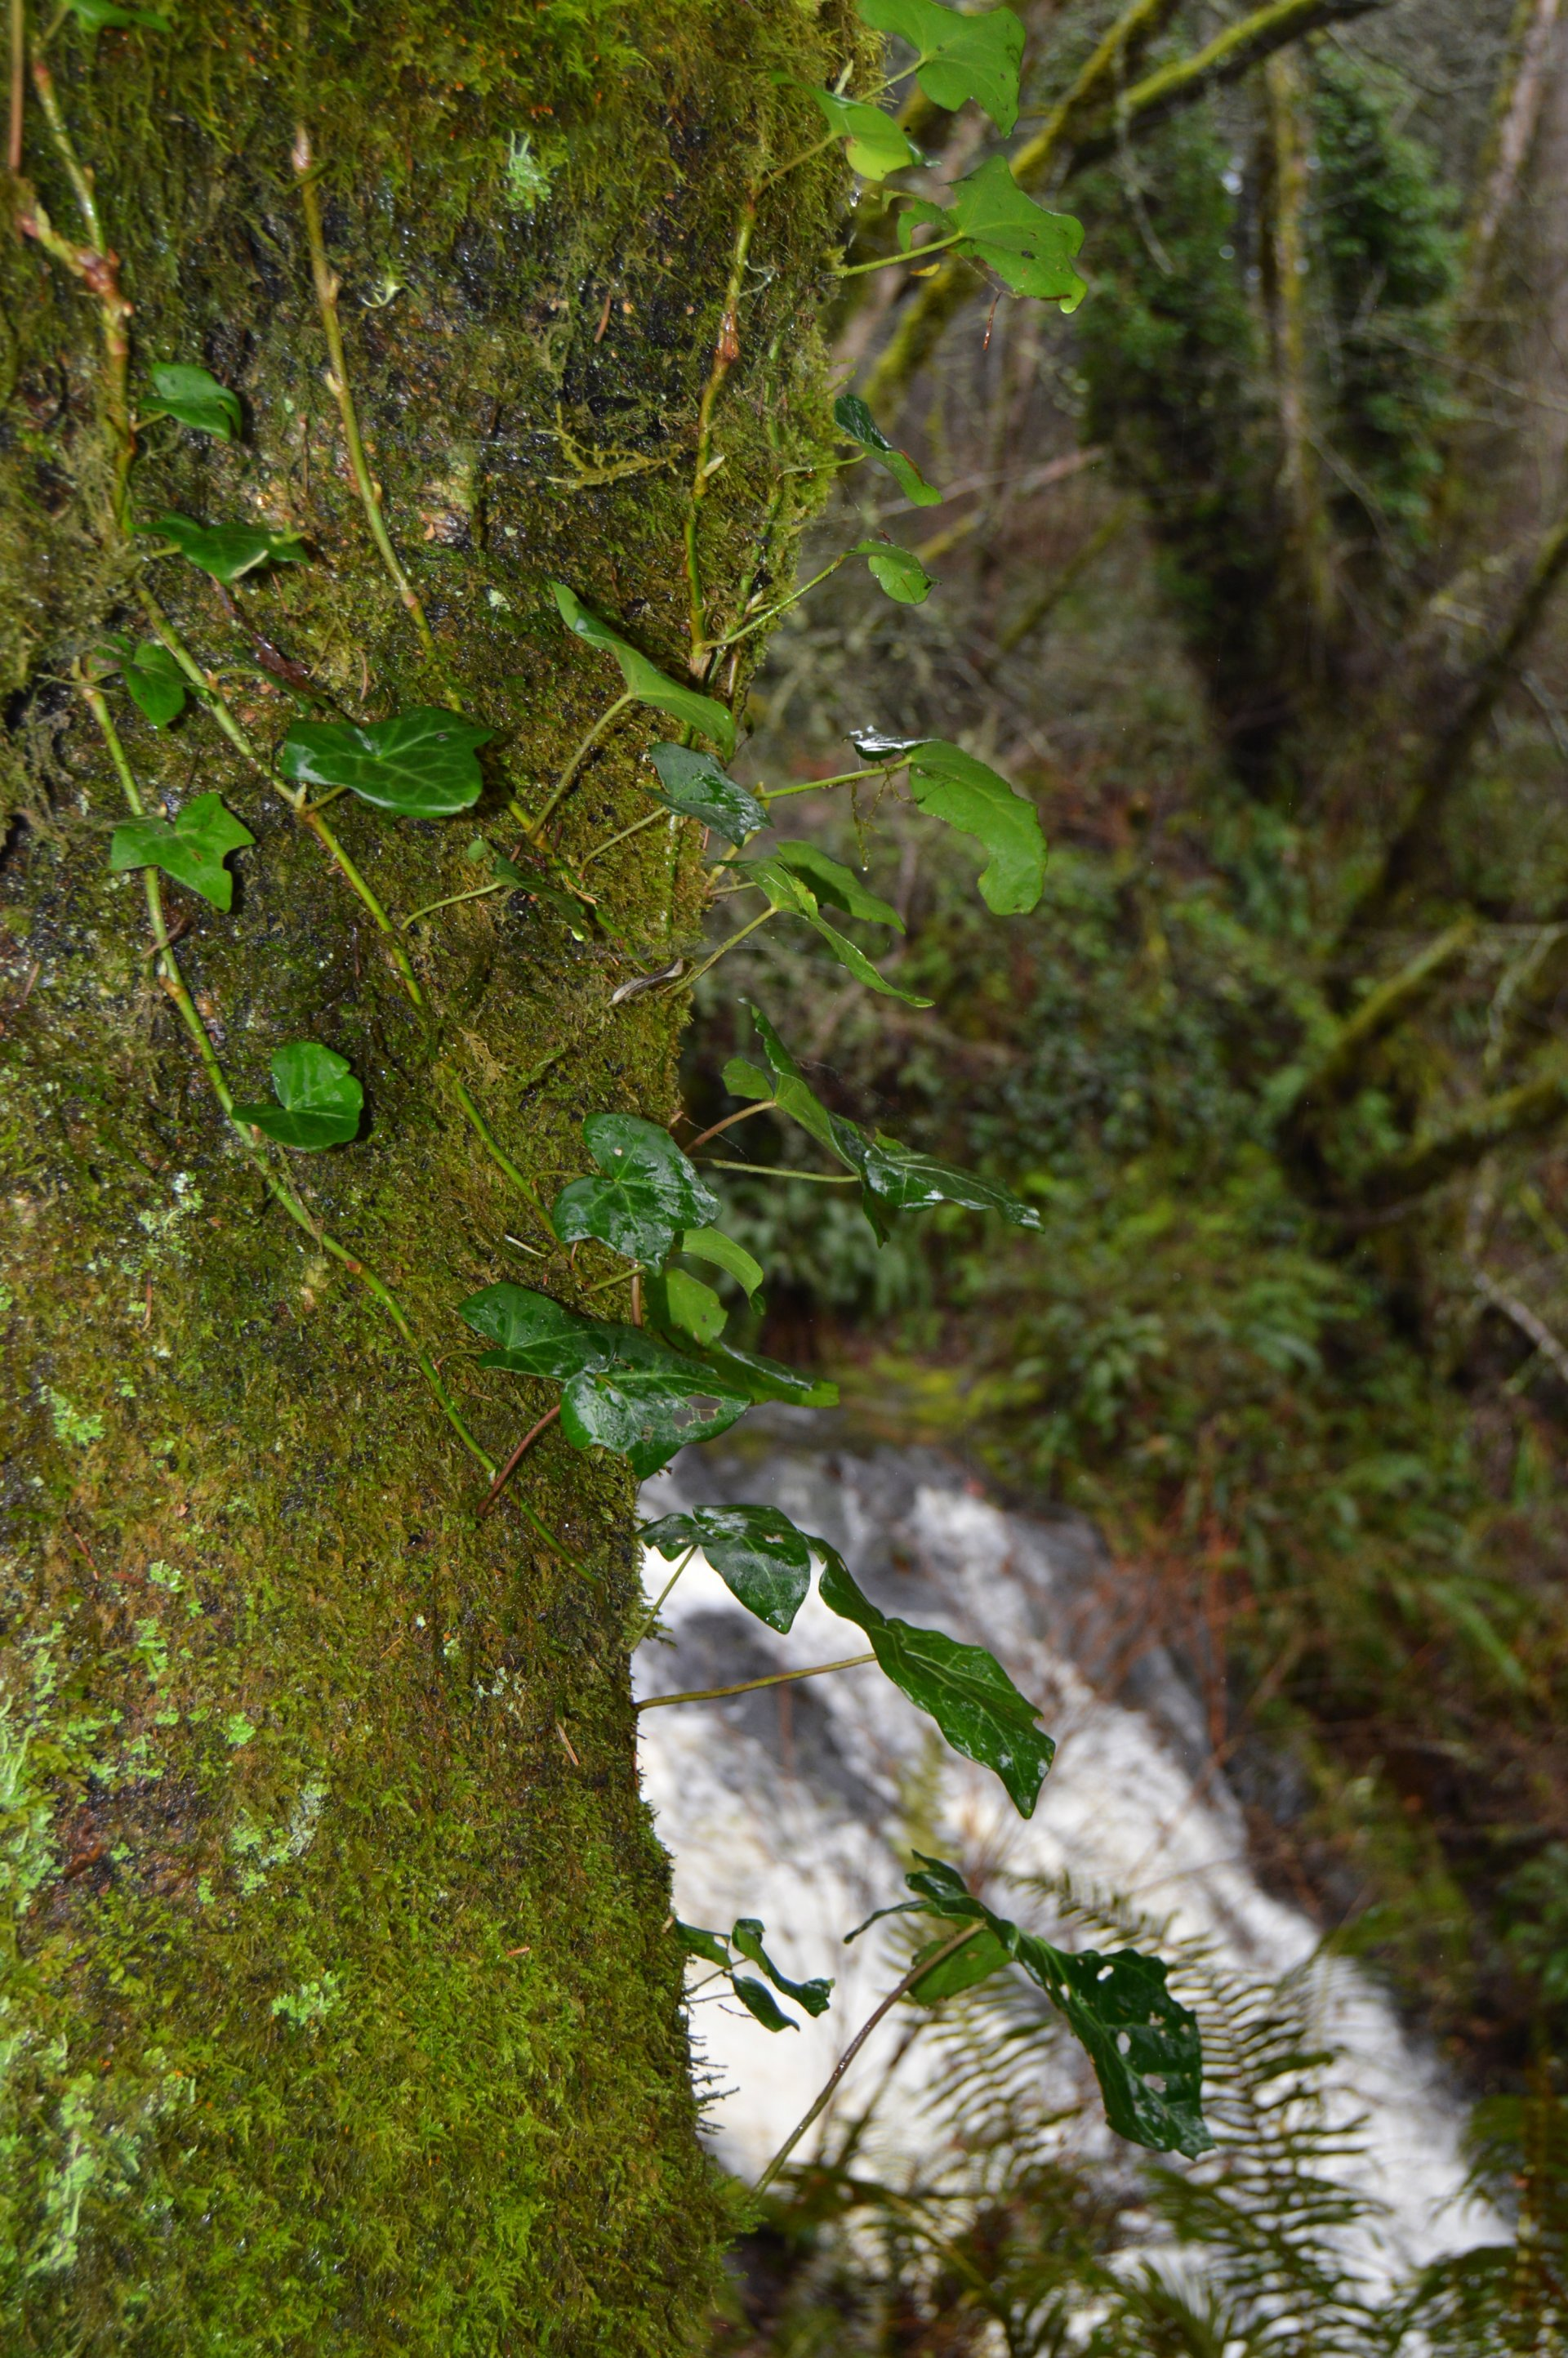 English ivy winds around a tree by Mill Creek Falls in McKinleyville, California. Photo by Kelly Bessem.